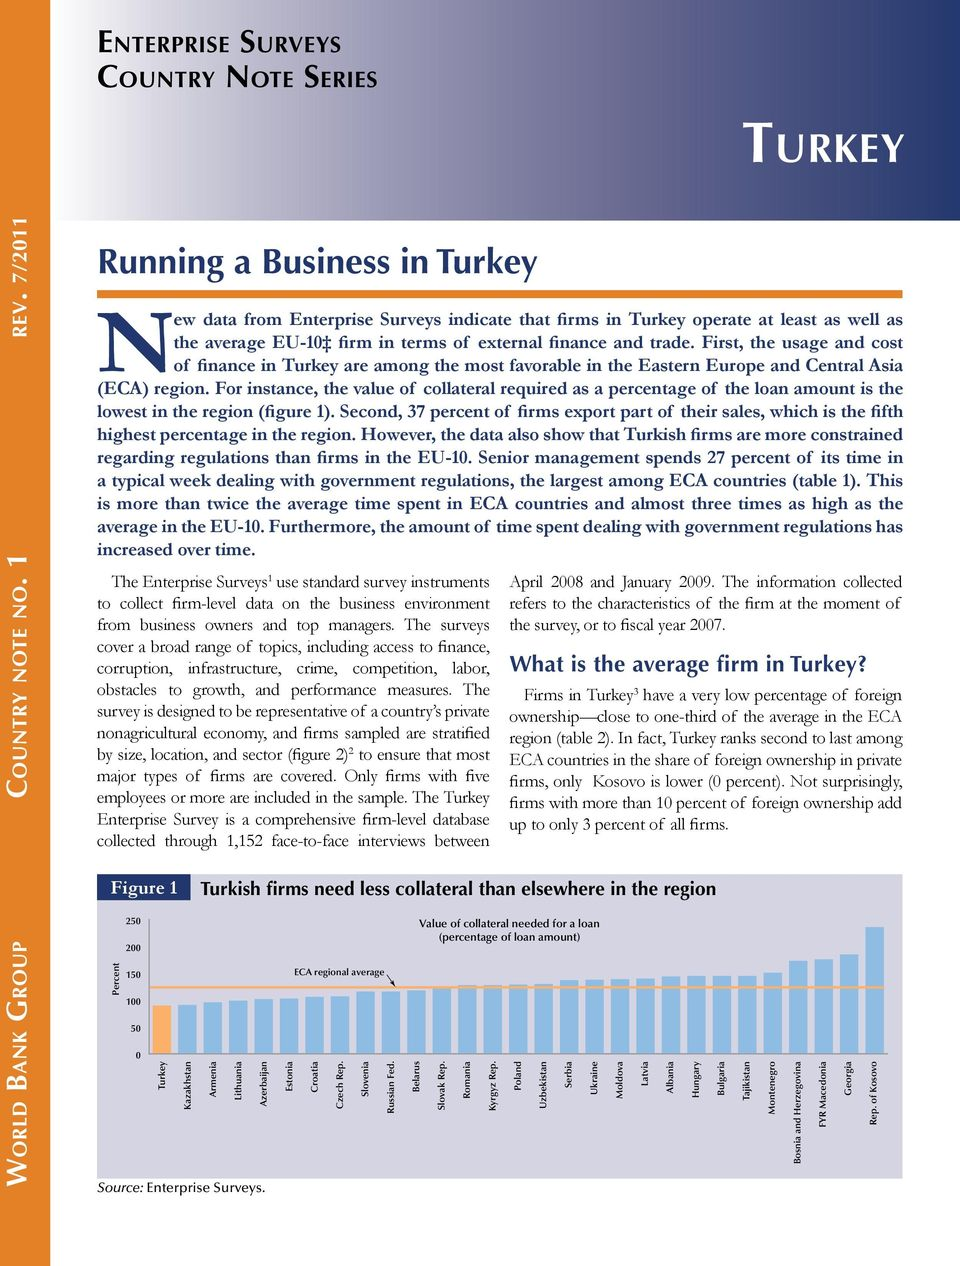 First, the usage and cost of finance in Turkey are among the most favorable in the Eastern Europe and Central Asia (ECA) region.